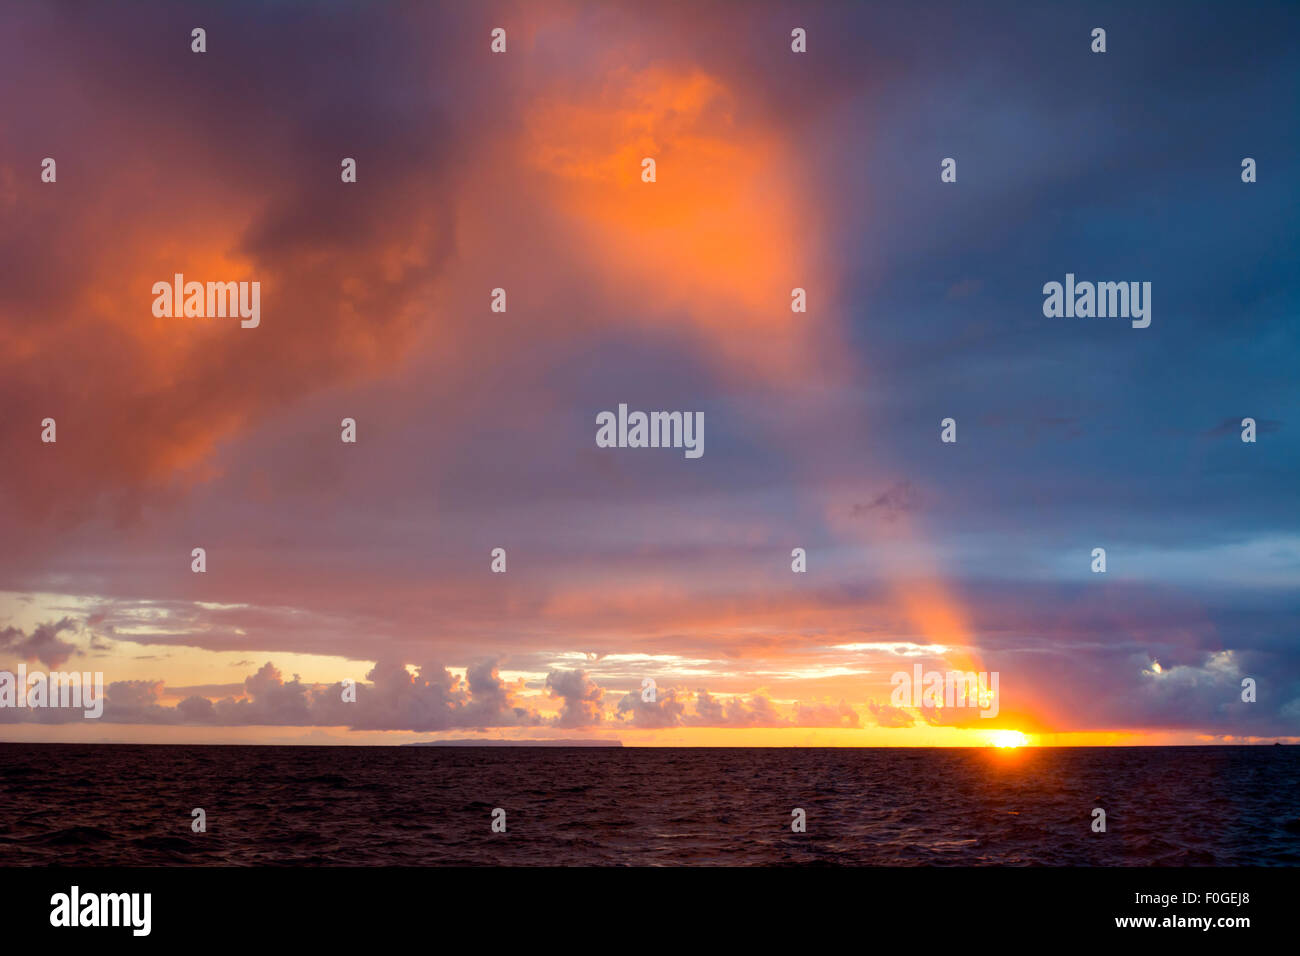 A sunset at Hanalei Beach in Kauai after a thunderstorm shows a beam of light piercing the dark clouds. - Stock Image